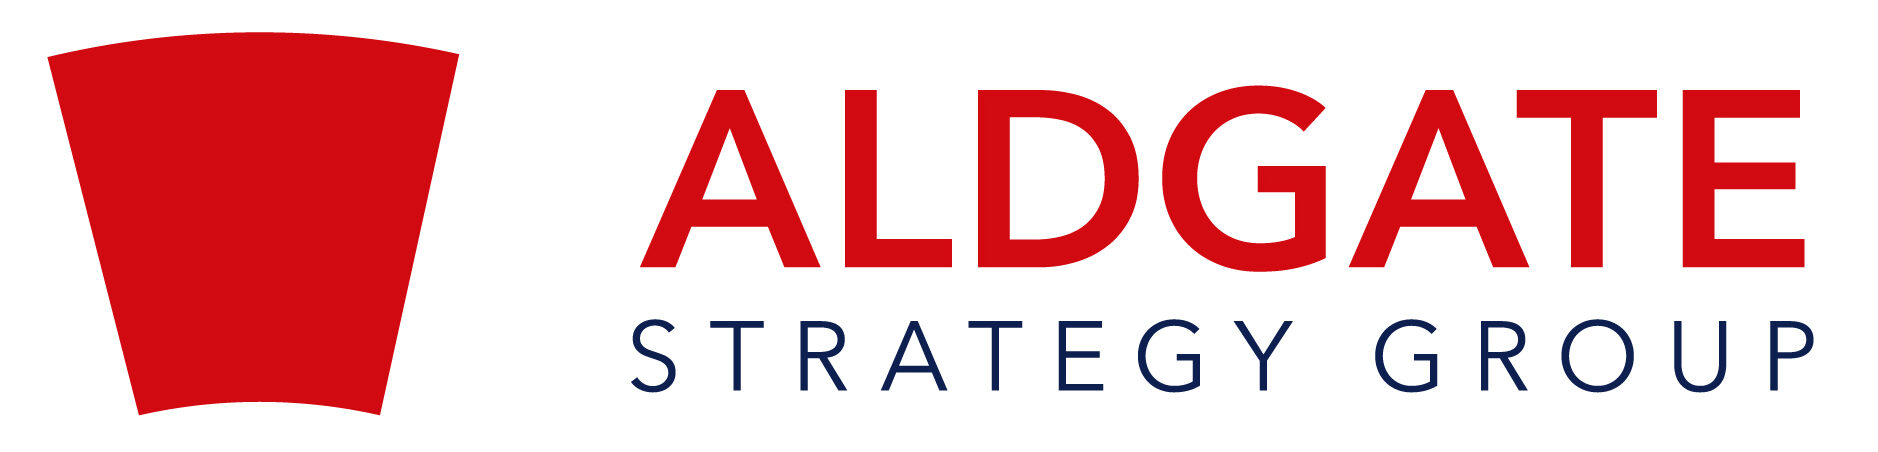 Aldgate Strategy Group